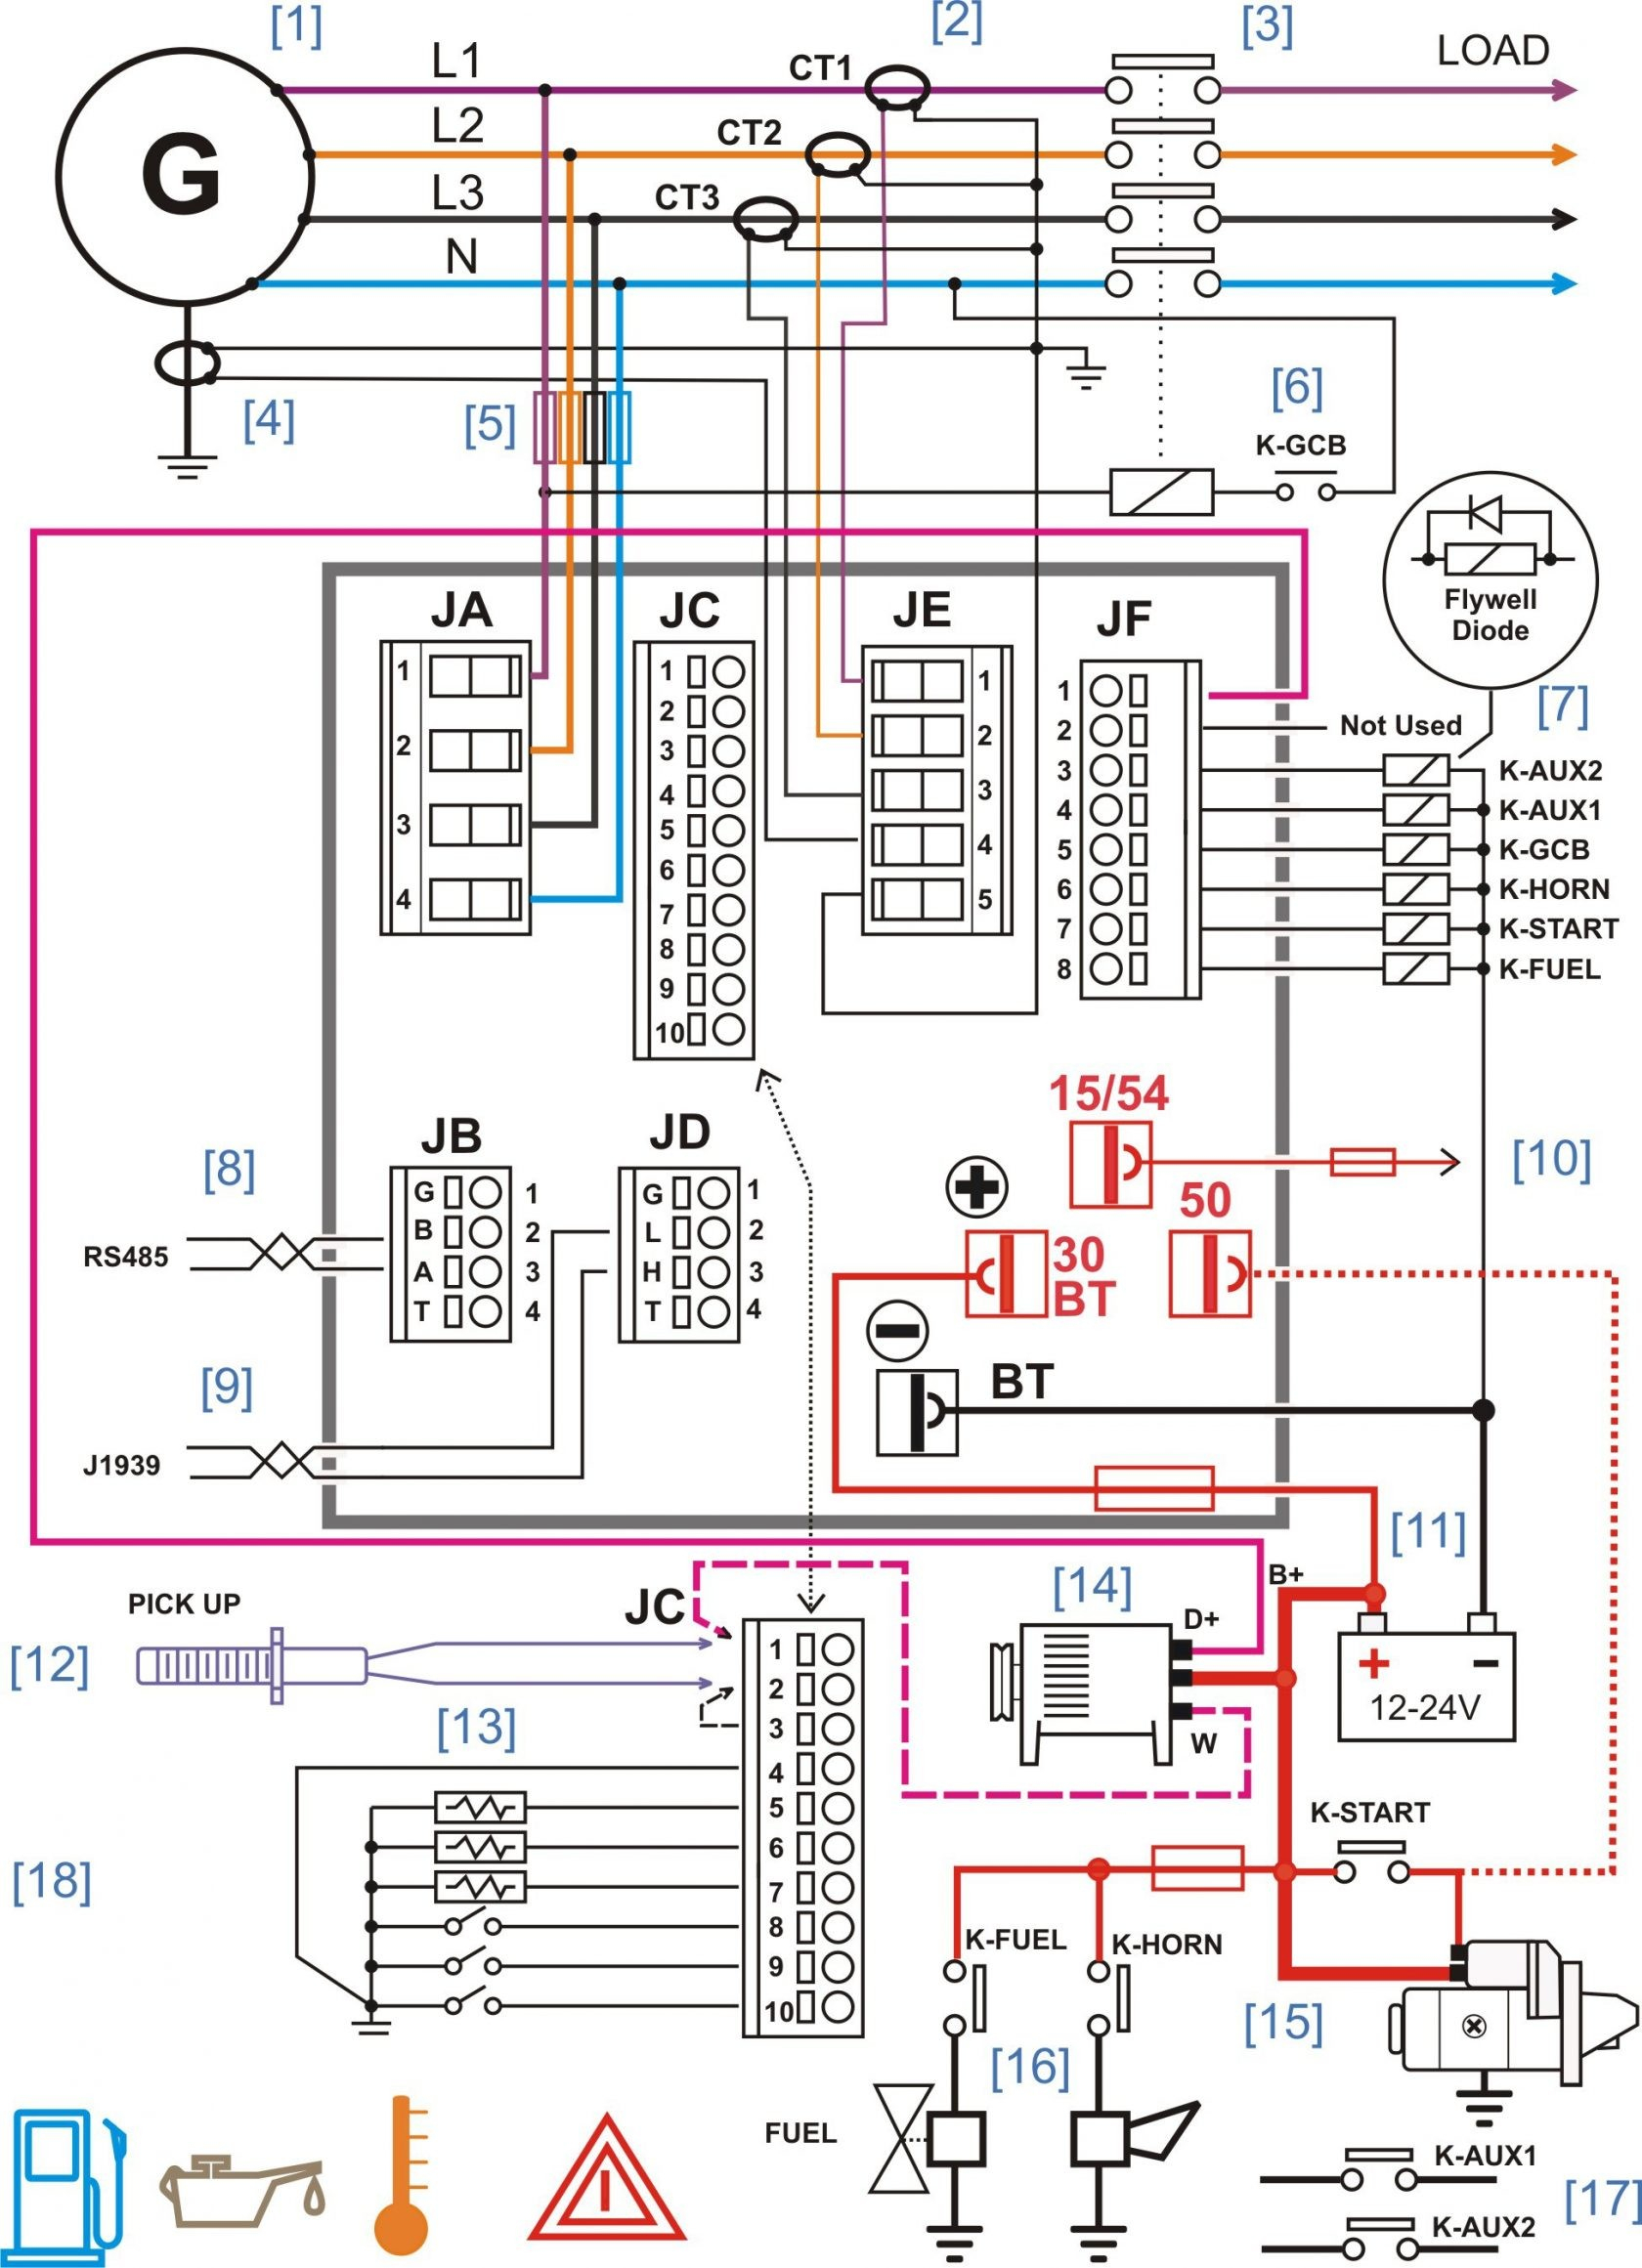 Radio Delco Diagram Wiring on